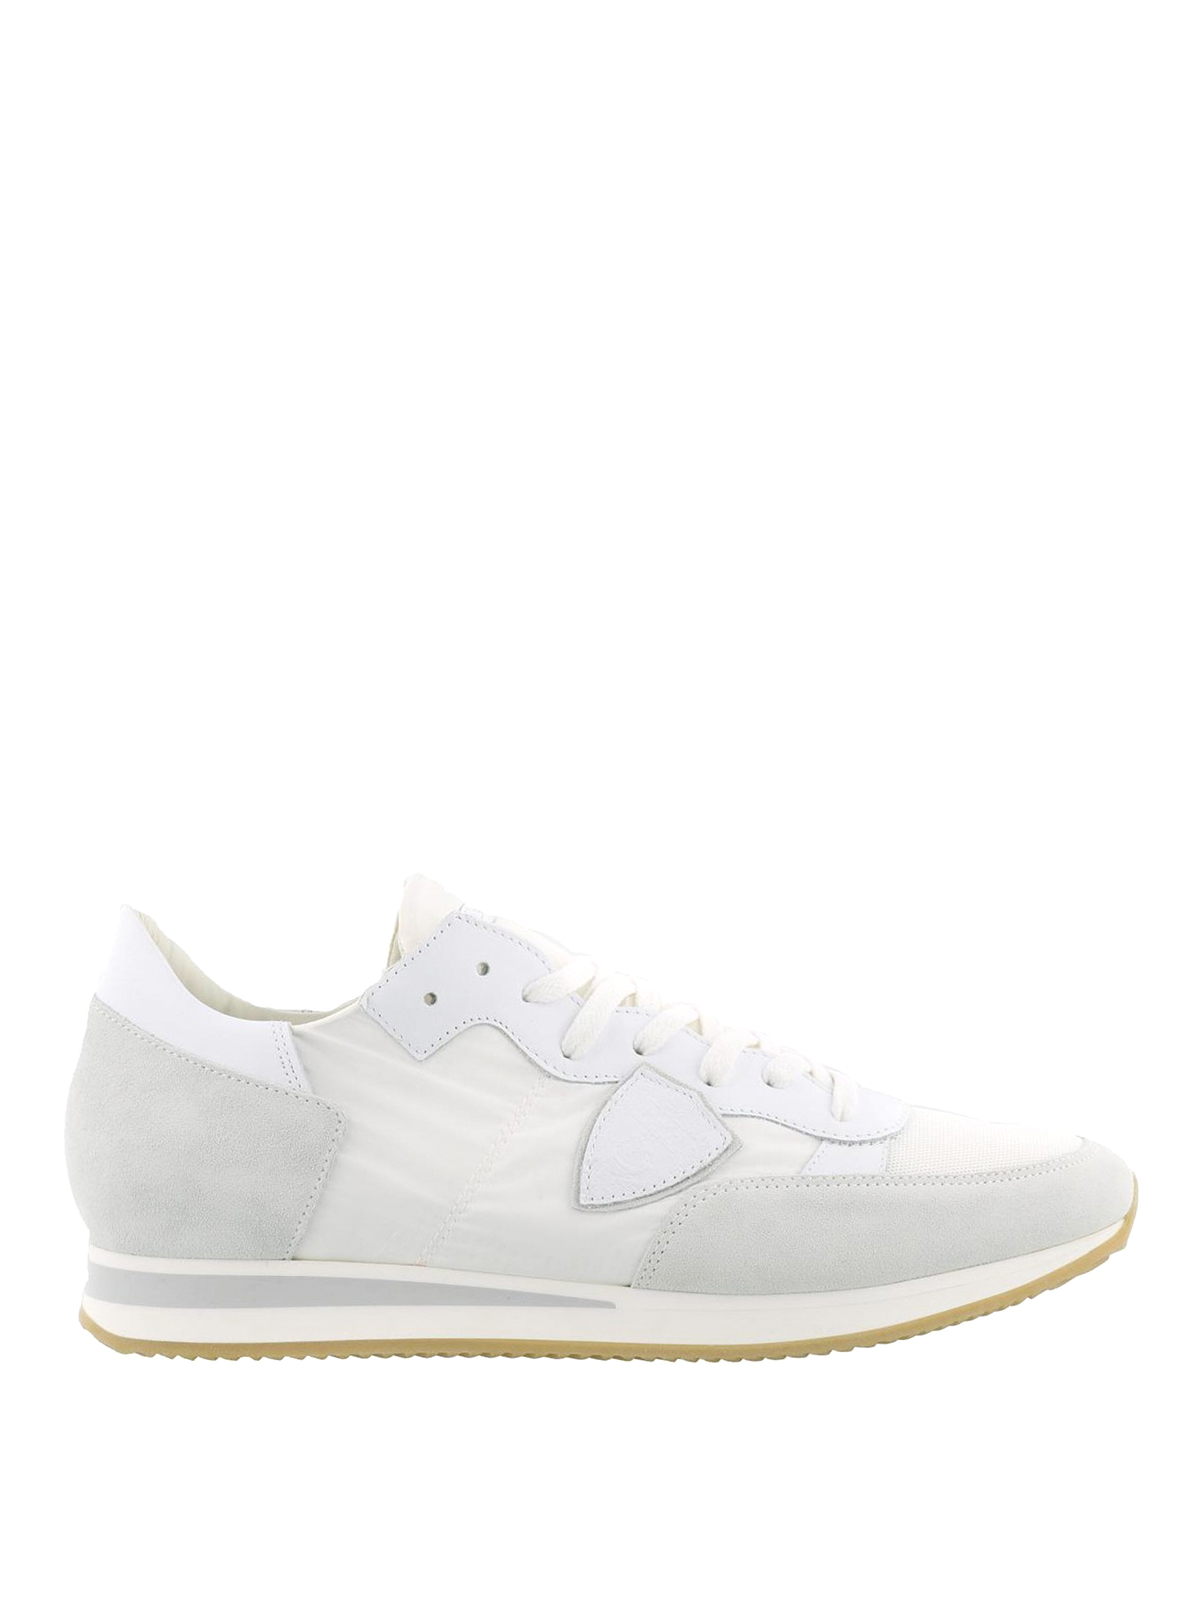 Philippe Model - Tropez white suede sneakers - trainers - TRLU 1101 7badb9eb763